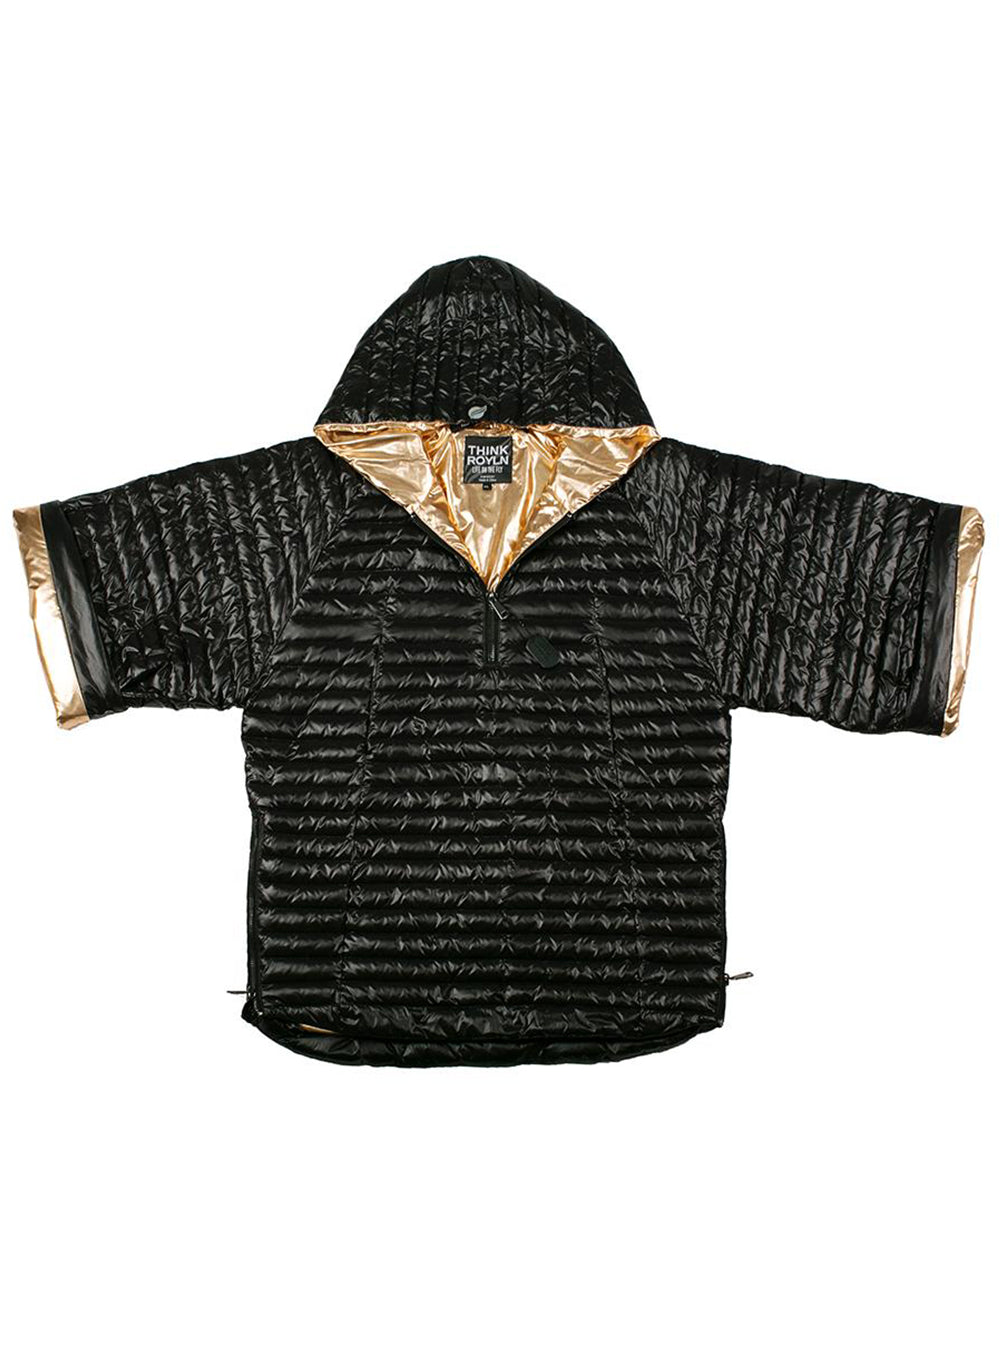 THINK ROYLN | Park Avenue Poncho in Black and Rose Gold